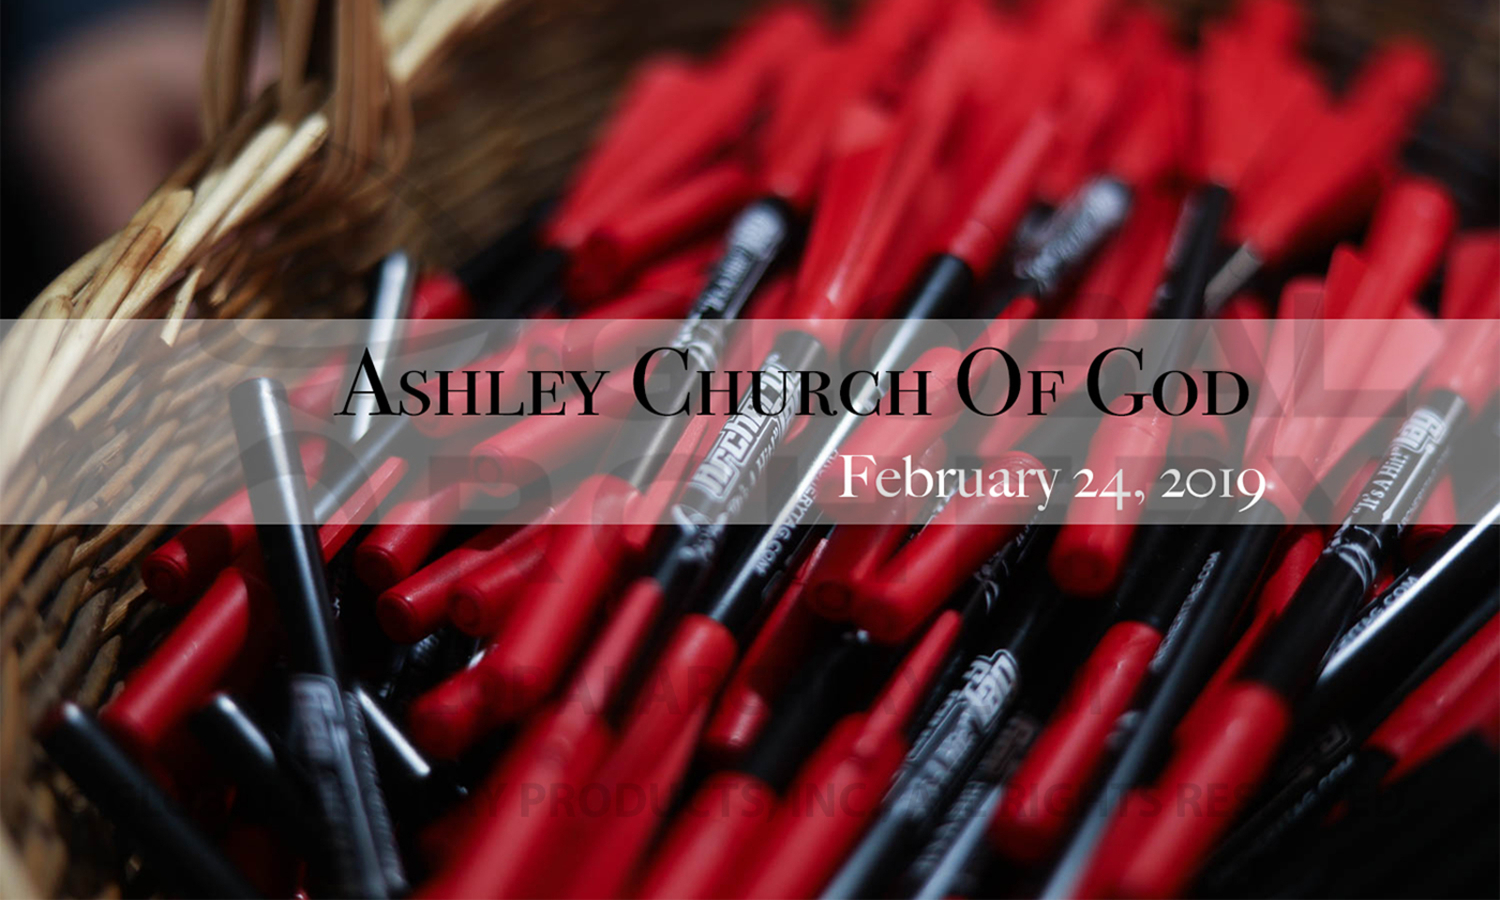 Ashley Church of God